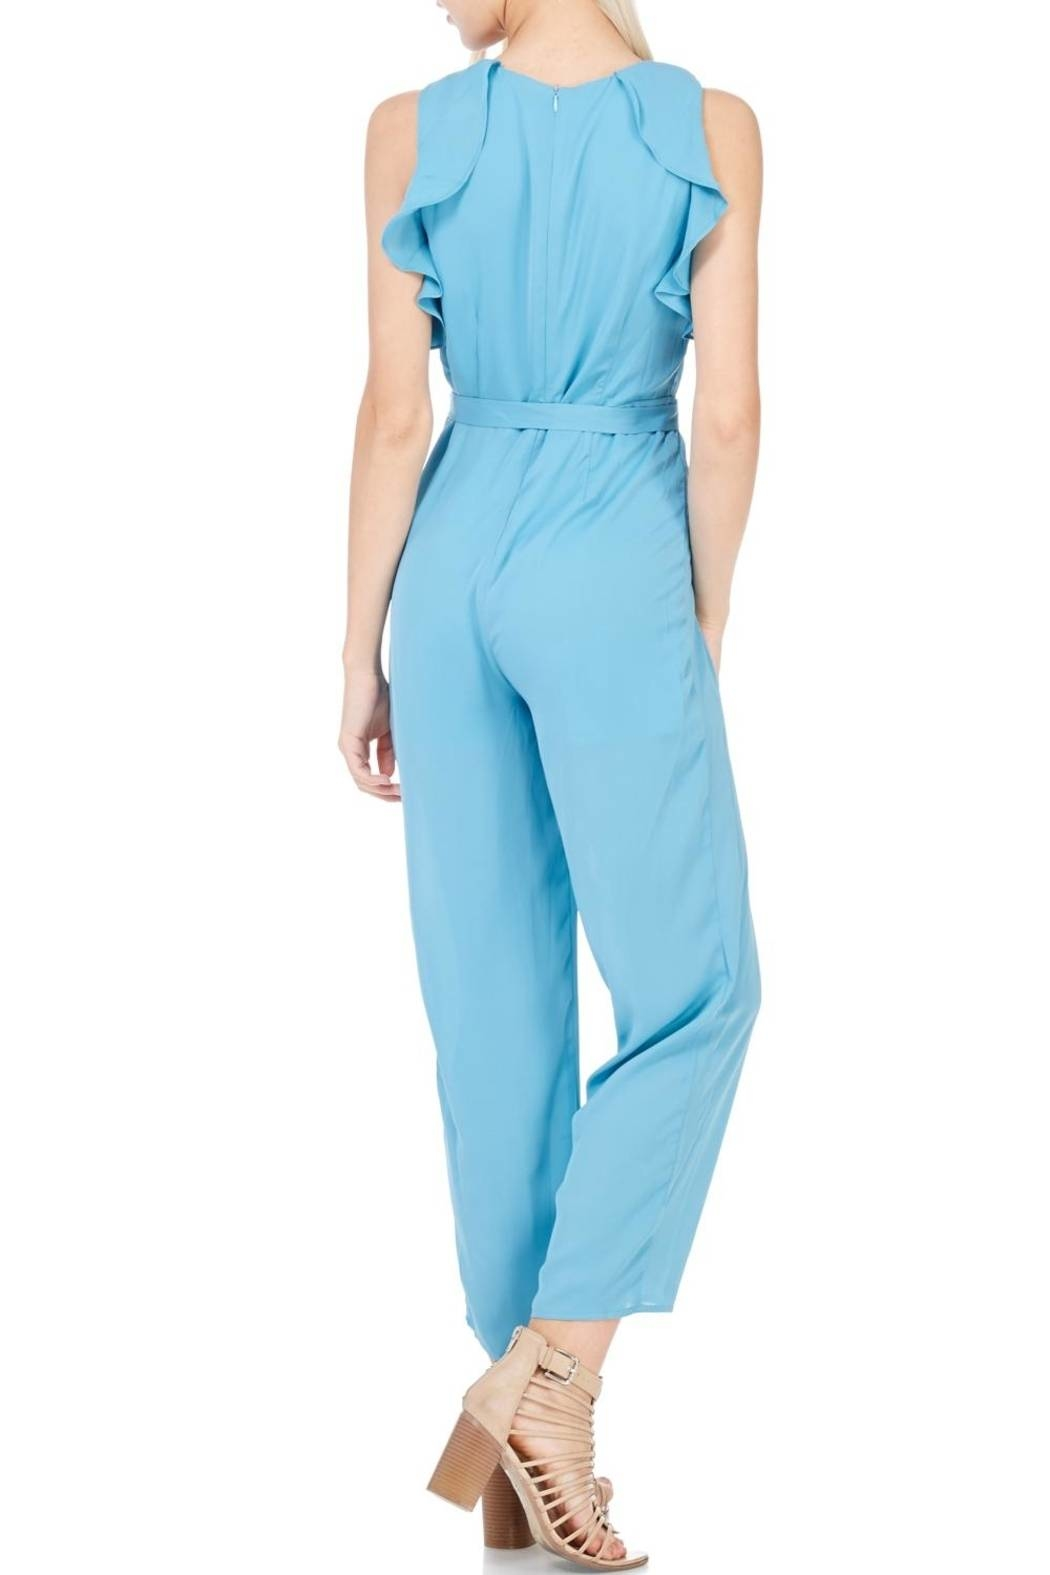 Everly Dusty Blue Lined Jumpsuit - Back Cropped Image